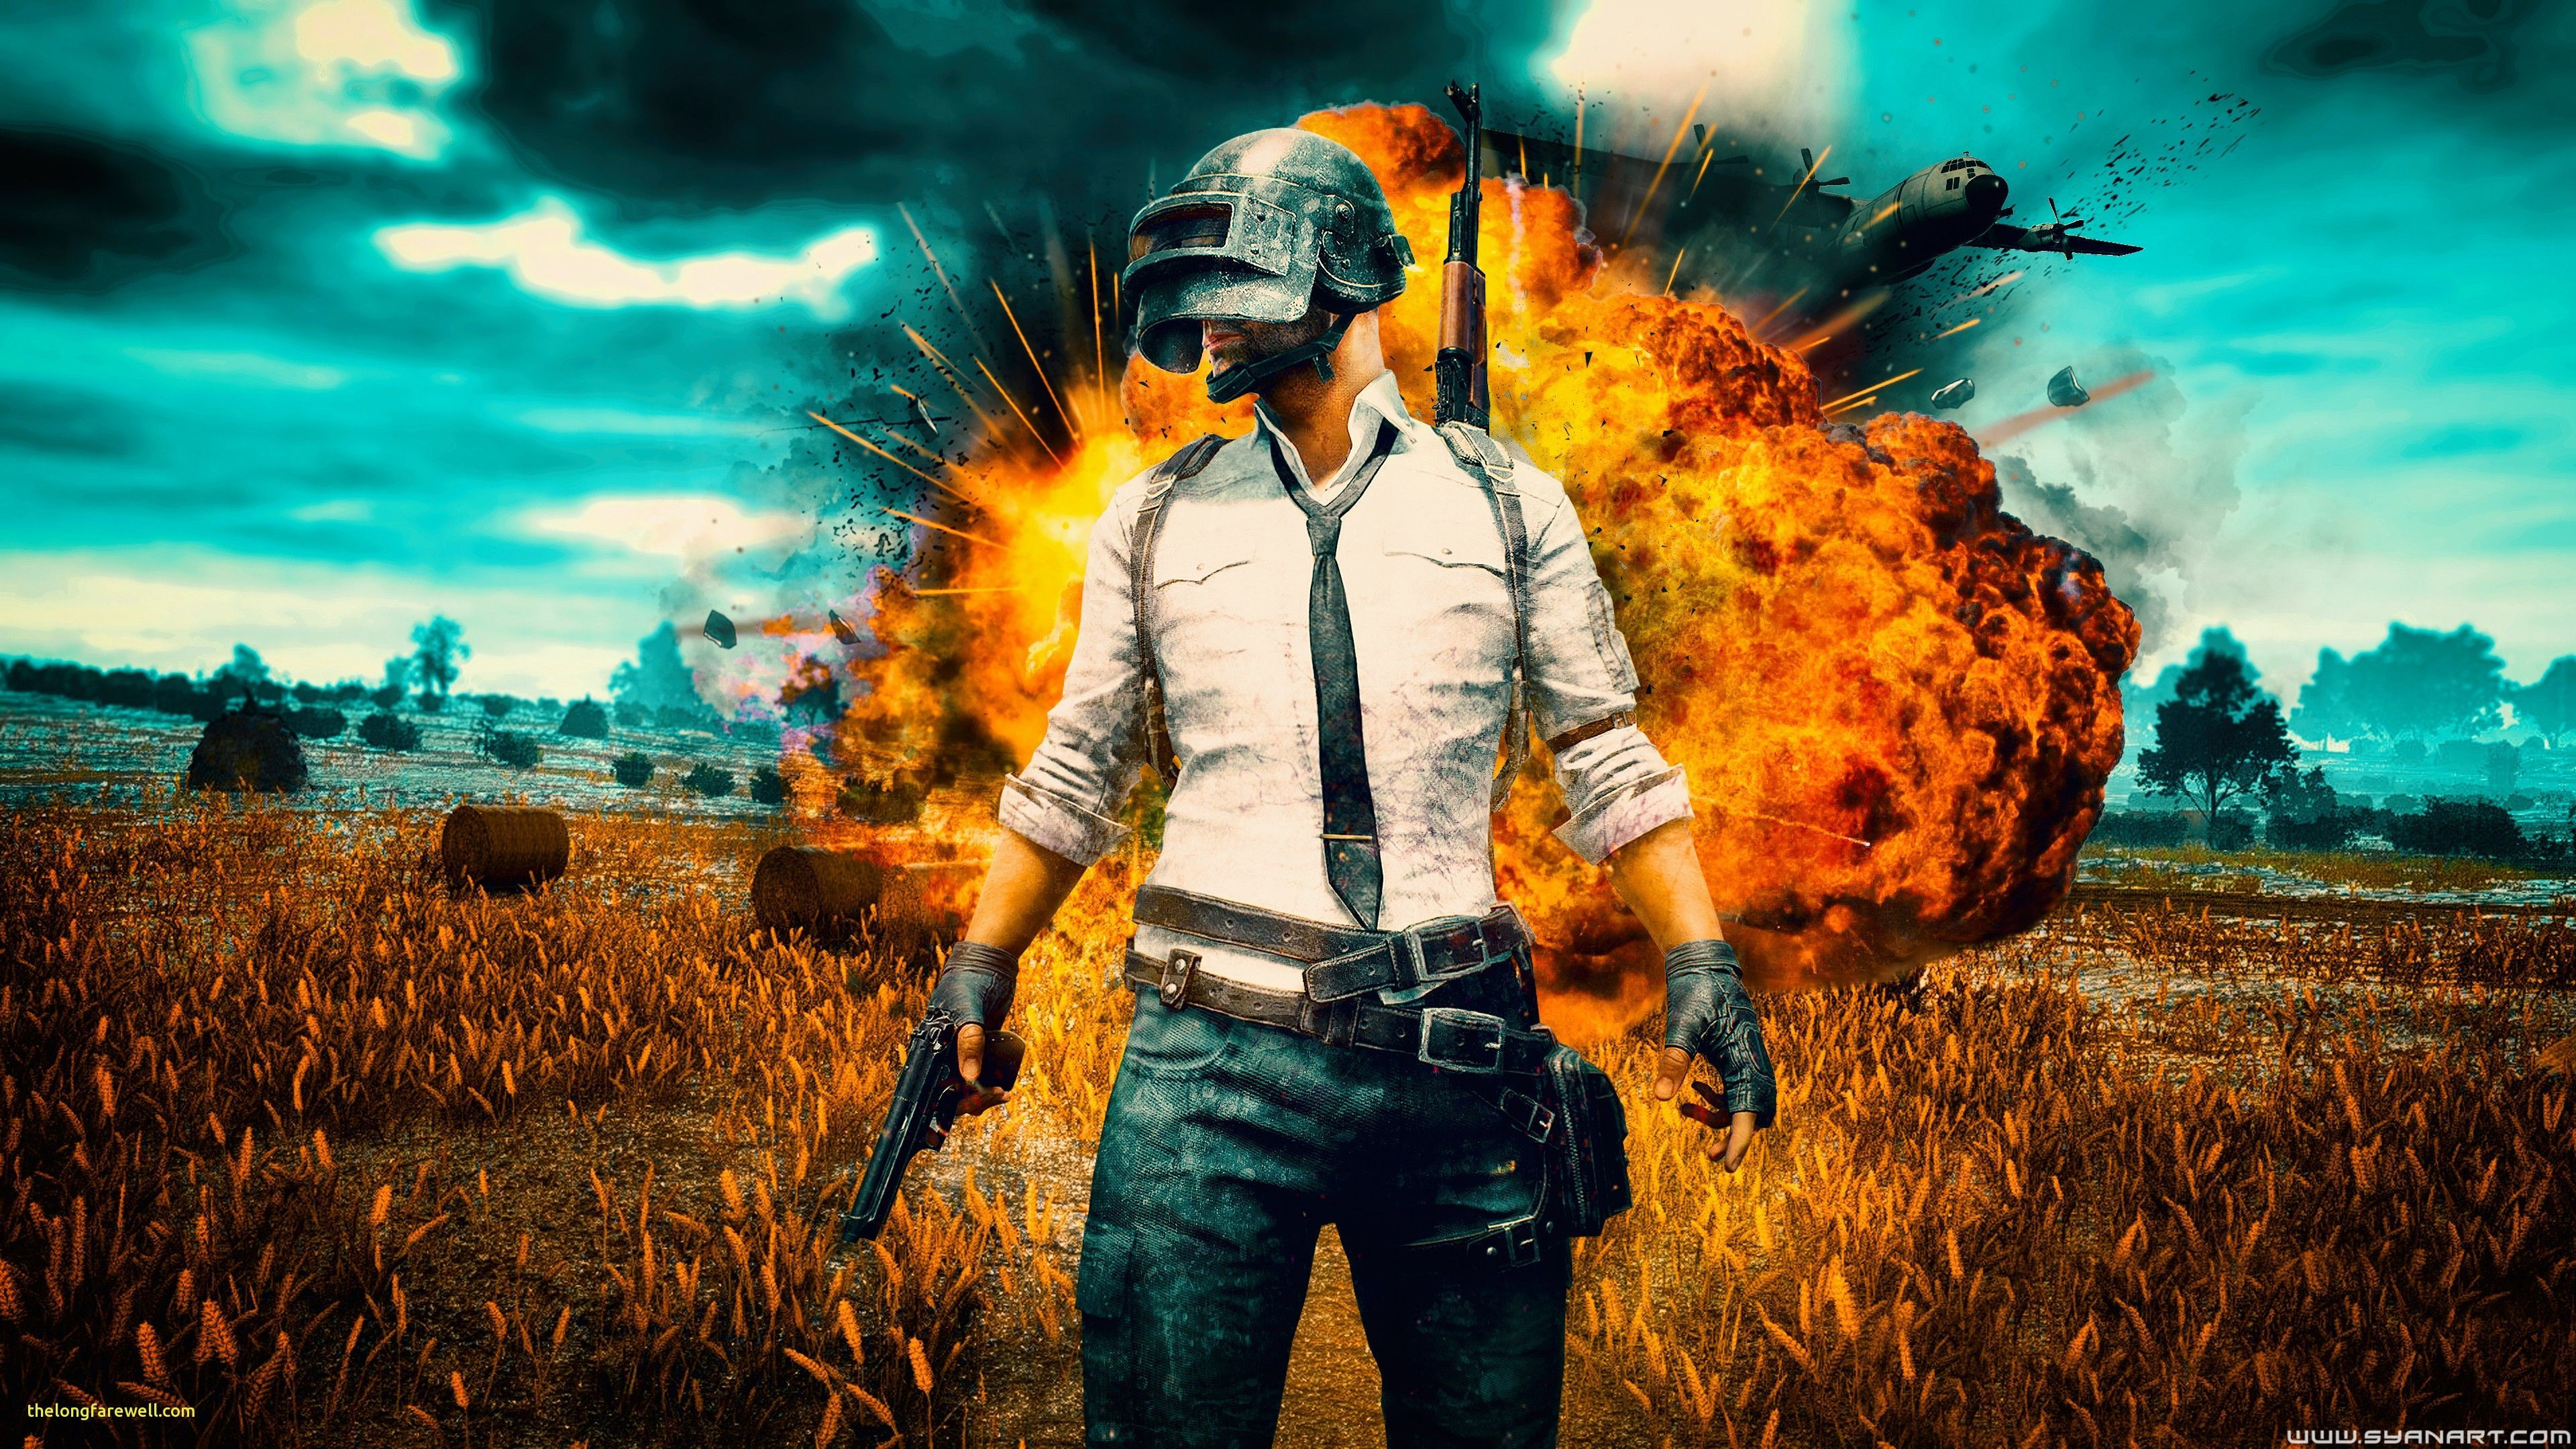 Pubg Collection See All Wallpapers Wallpapers Background Games In 2020 Wallpaper Pc 4k Wallpapers For Pc 4k Wallpaper For Mobile